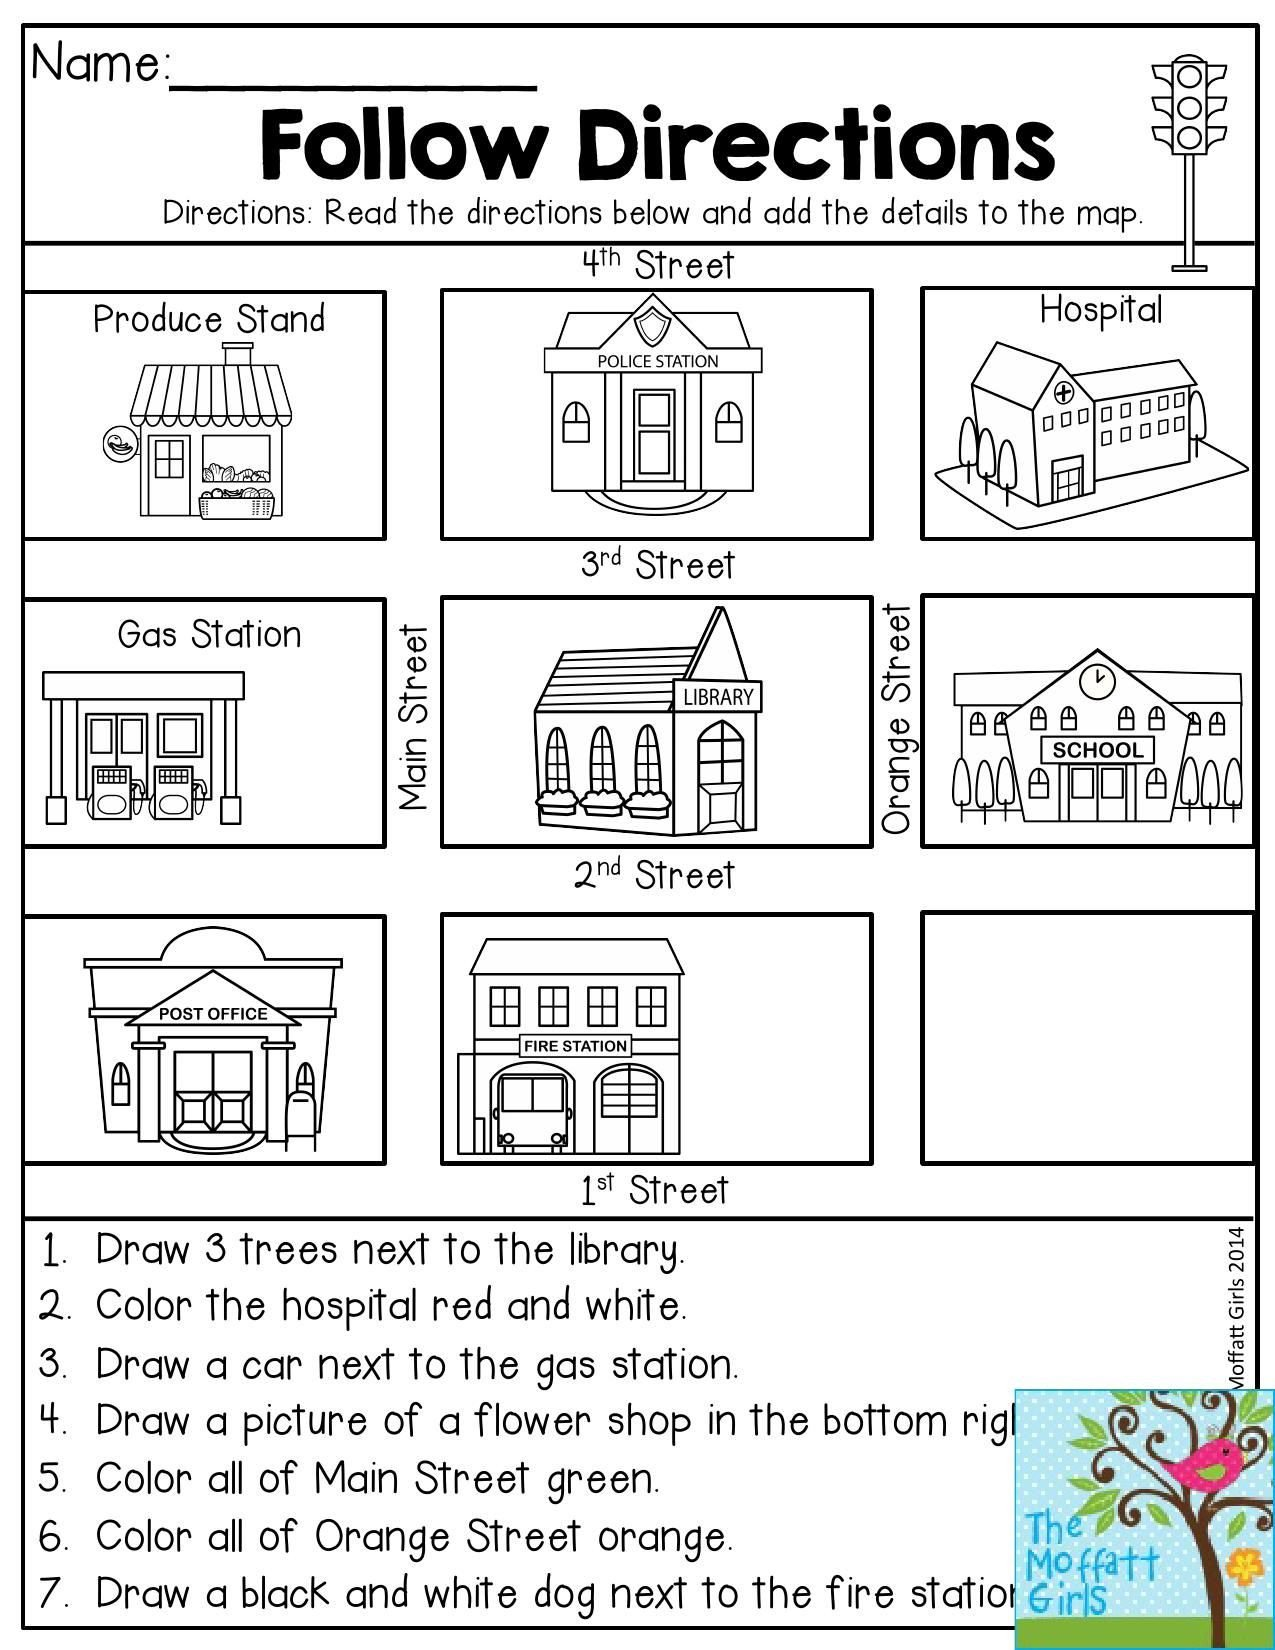 Following Directions Worksheet for Kindergarten Follow Directions Read the Directions and Add the Details